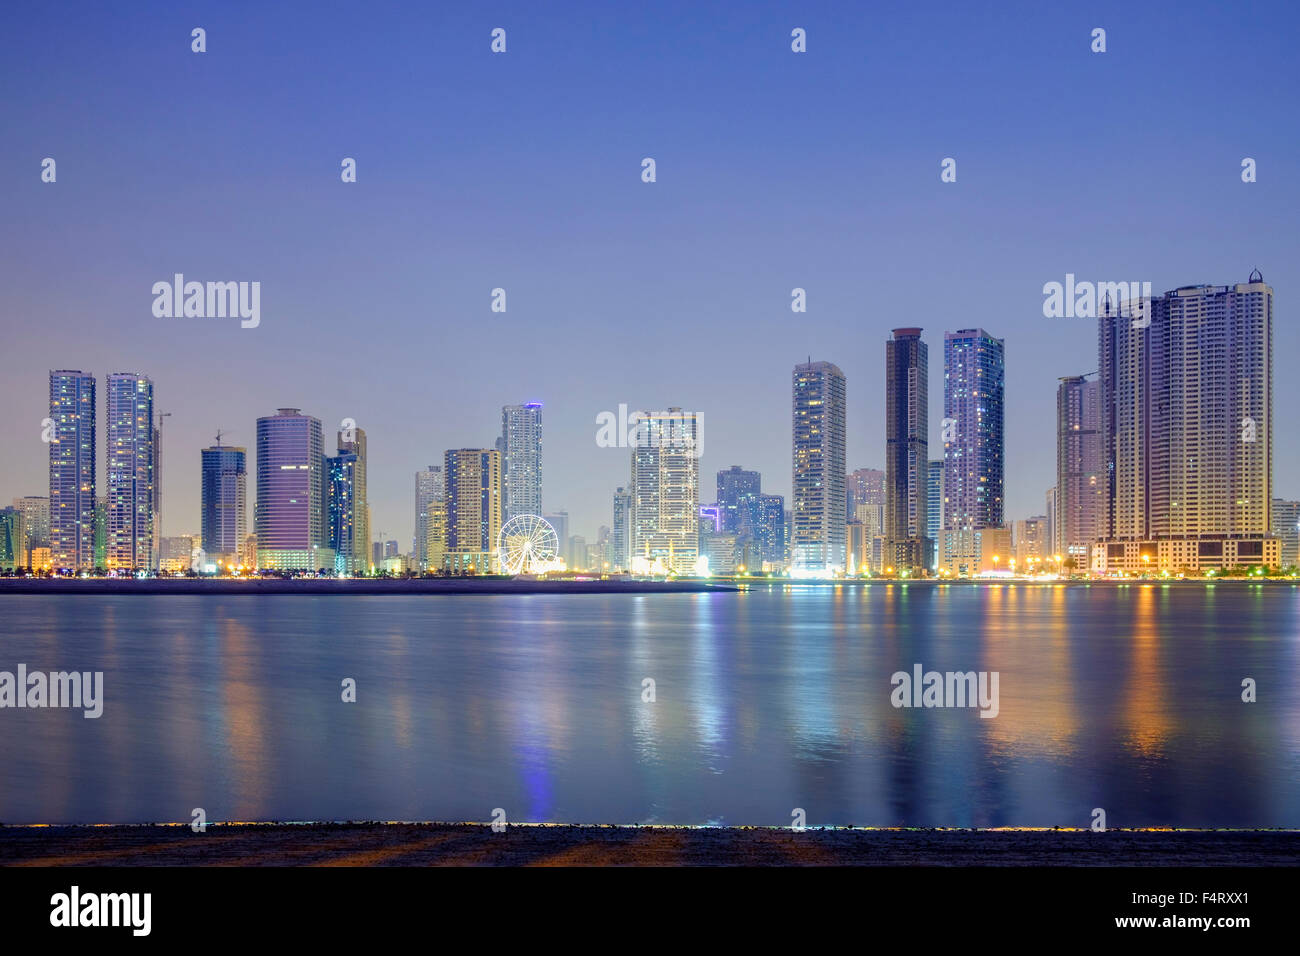 Night skyline view of modern high-rise apartment buildings along Corniche in Sharjah United Arab Emirates - Stock Image